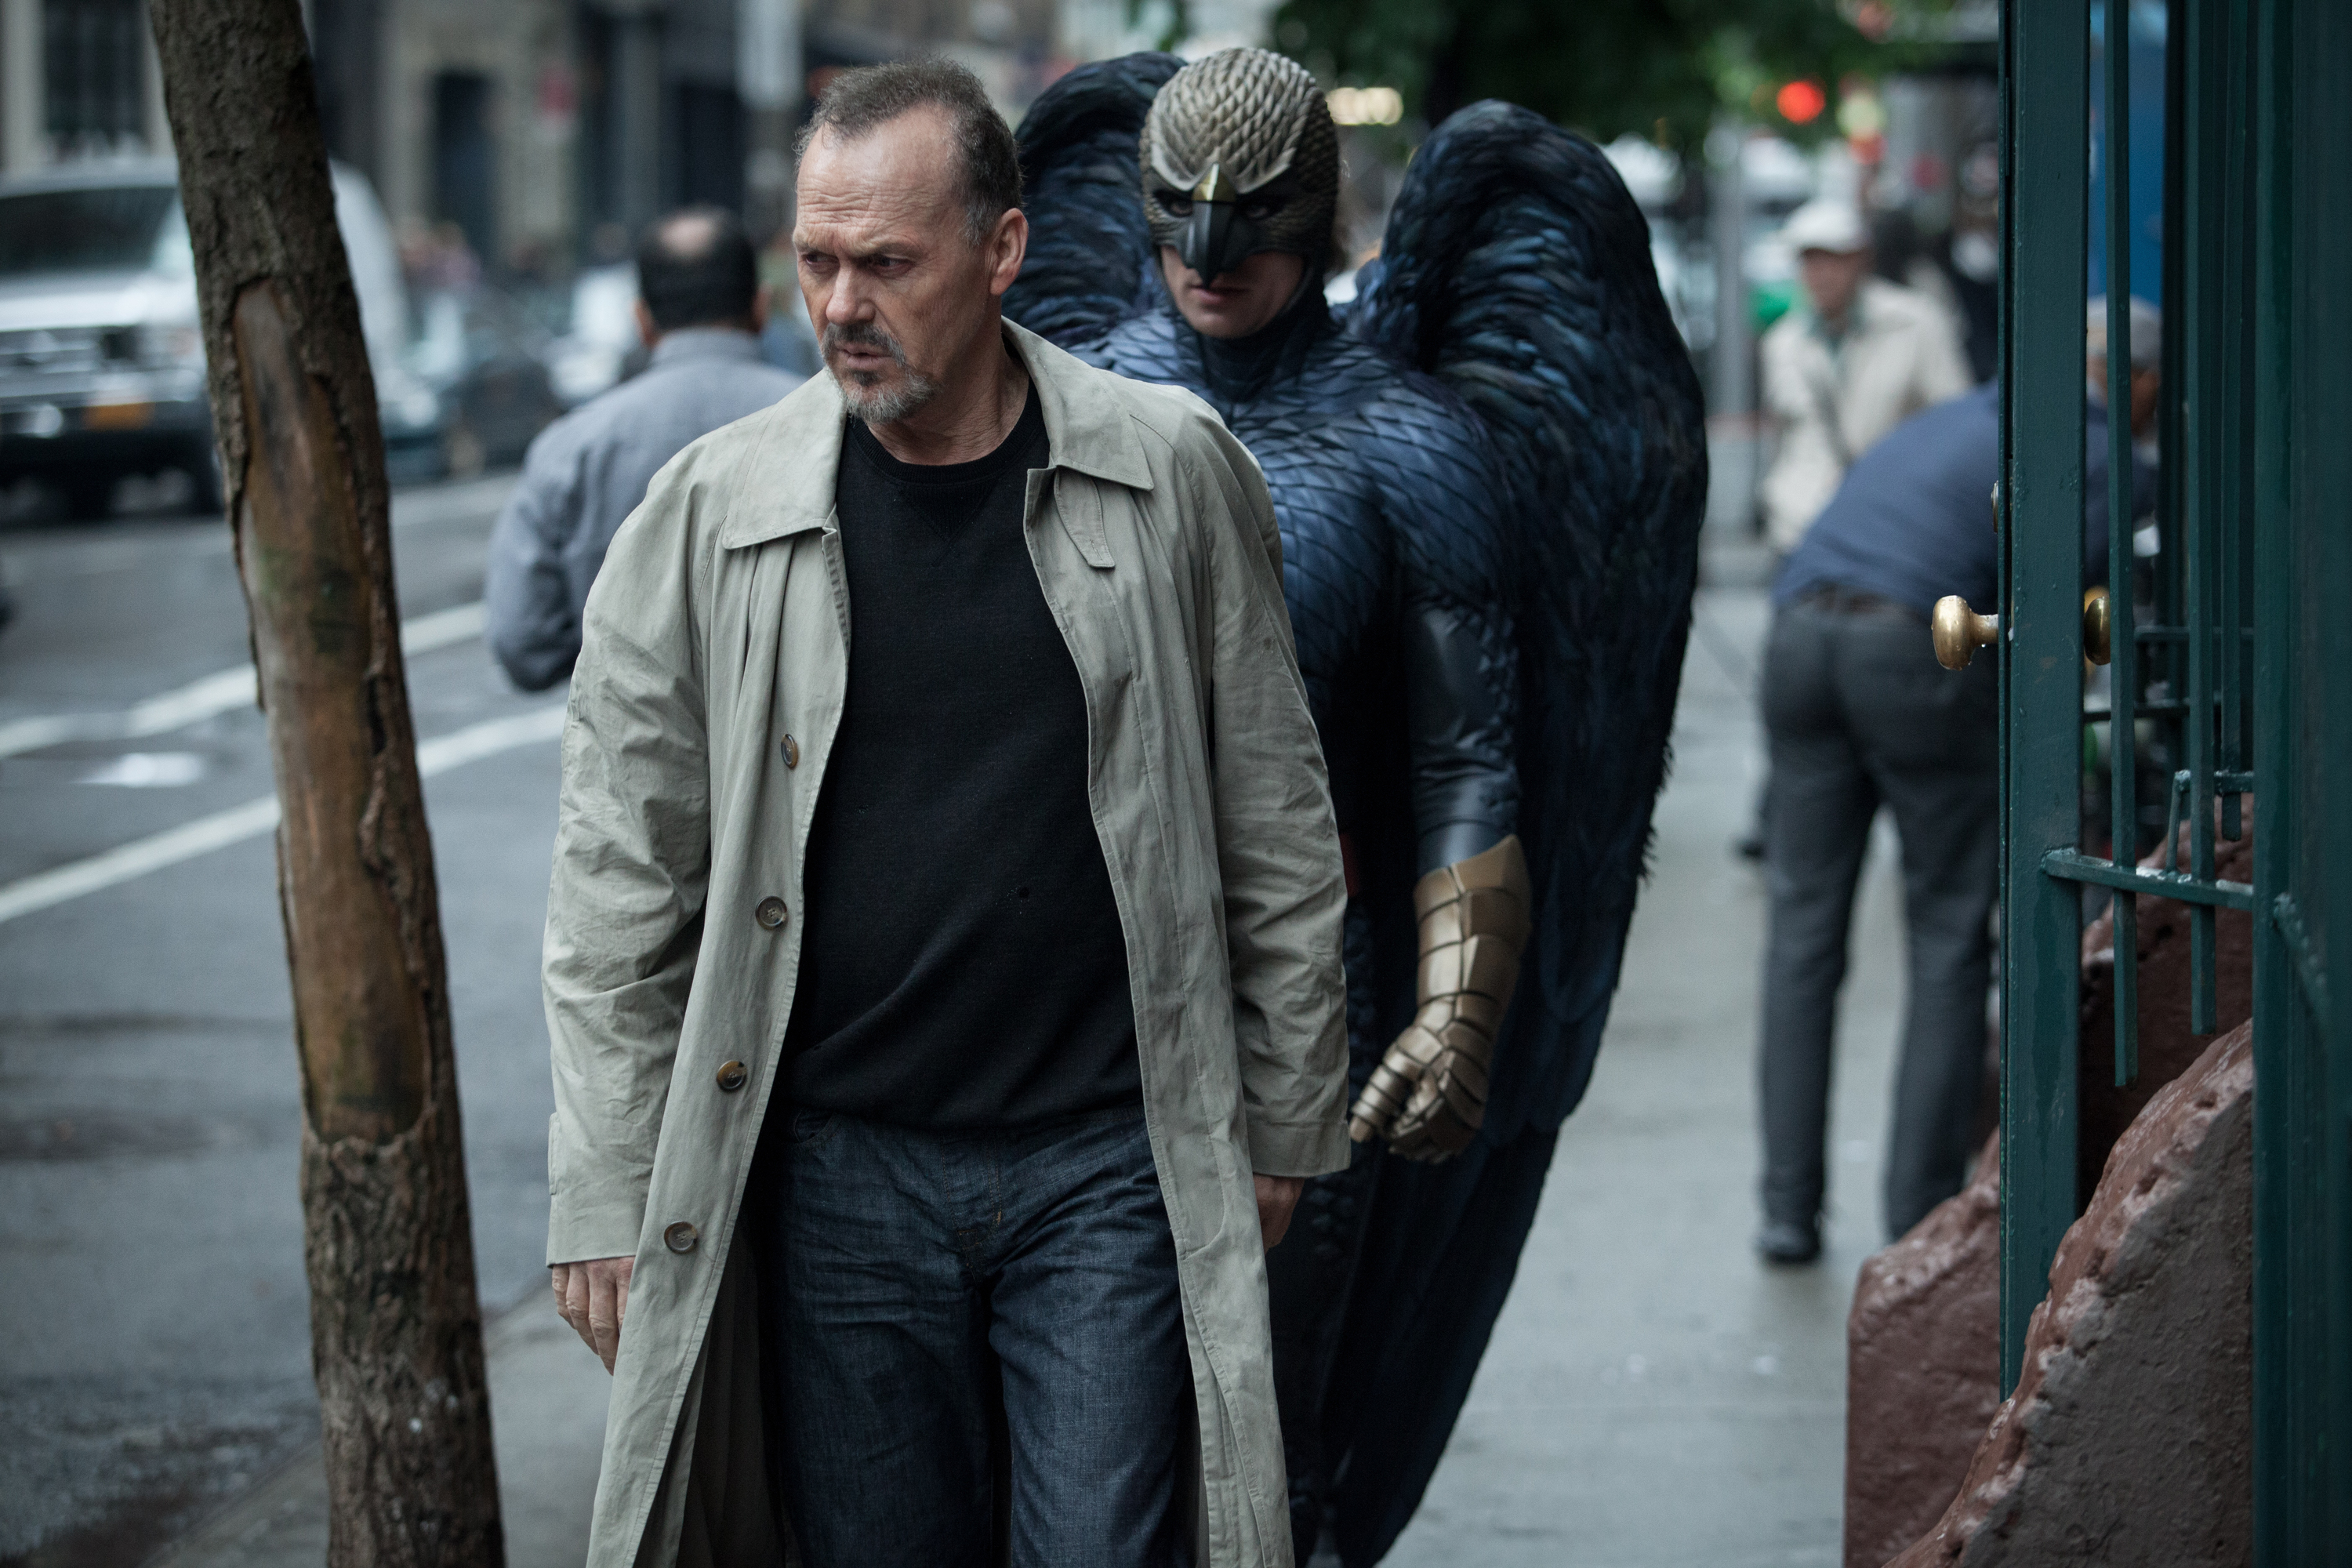 Drummer Antonio Sanchez to perform Birdman score live in NYC